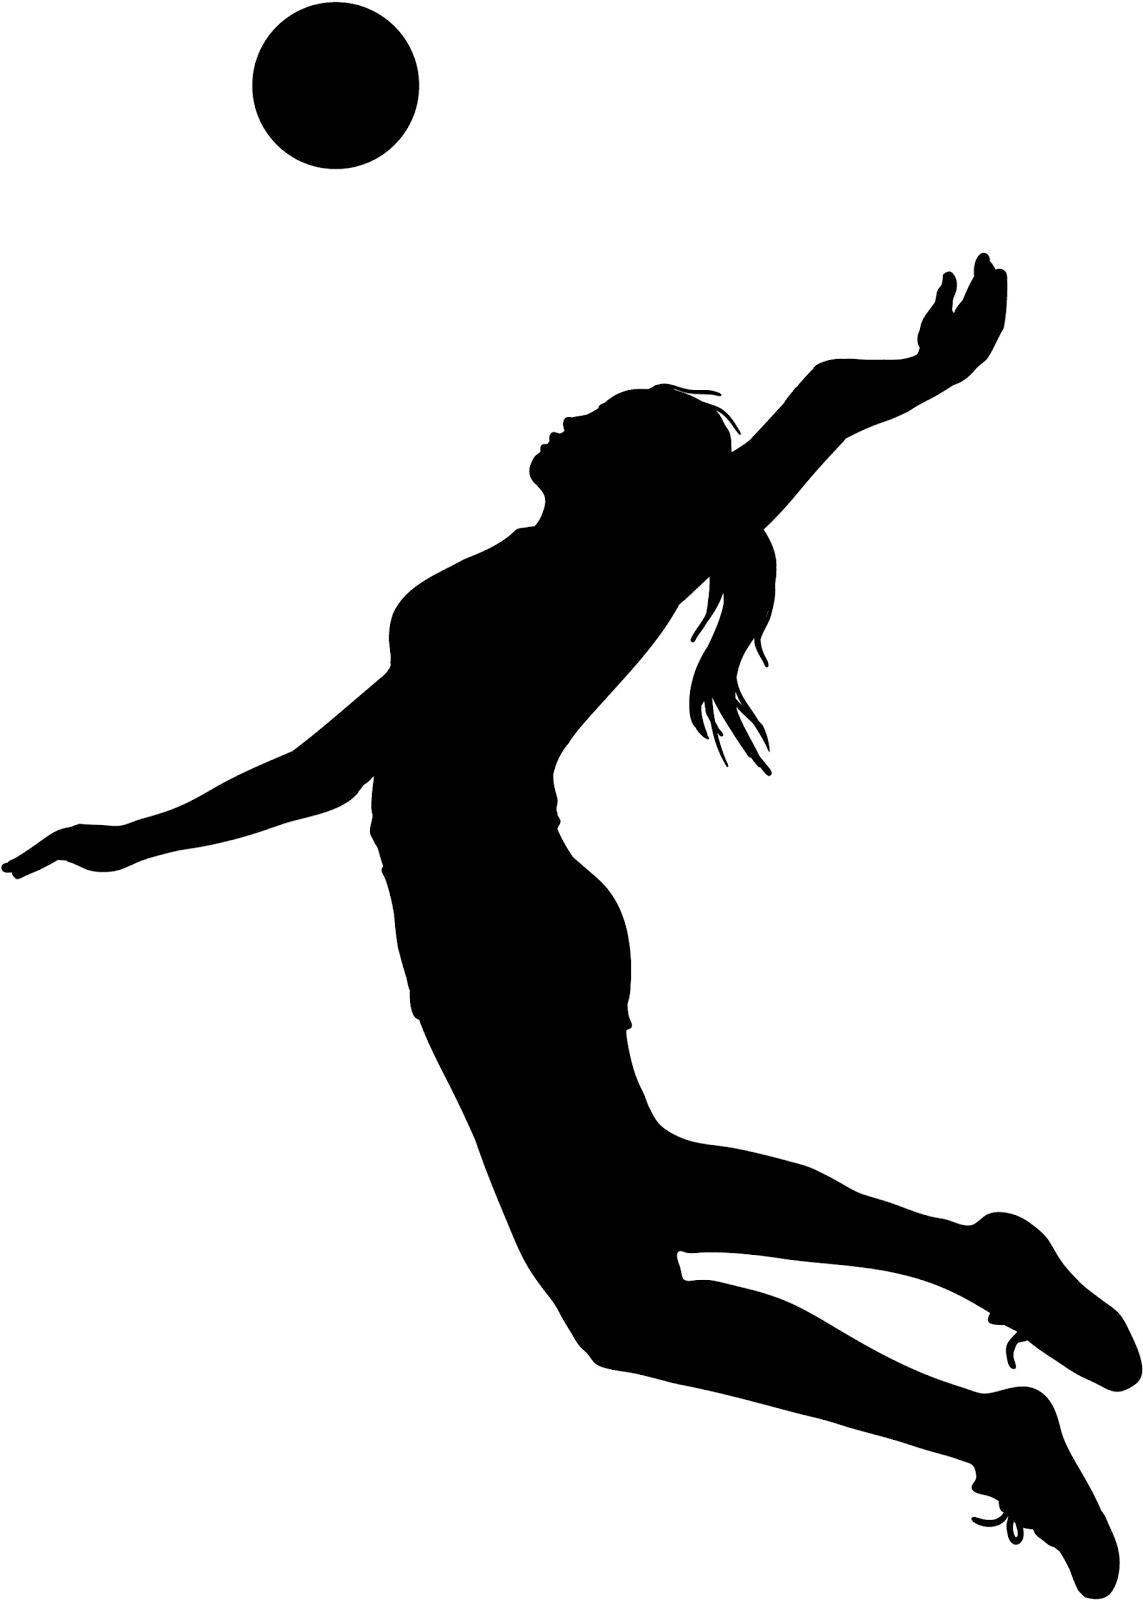 Silhouette at getdrawings com. Volleyball clipart volleyball hitter image free